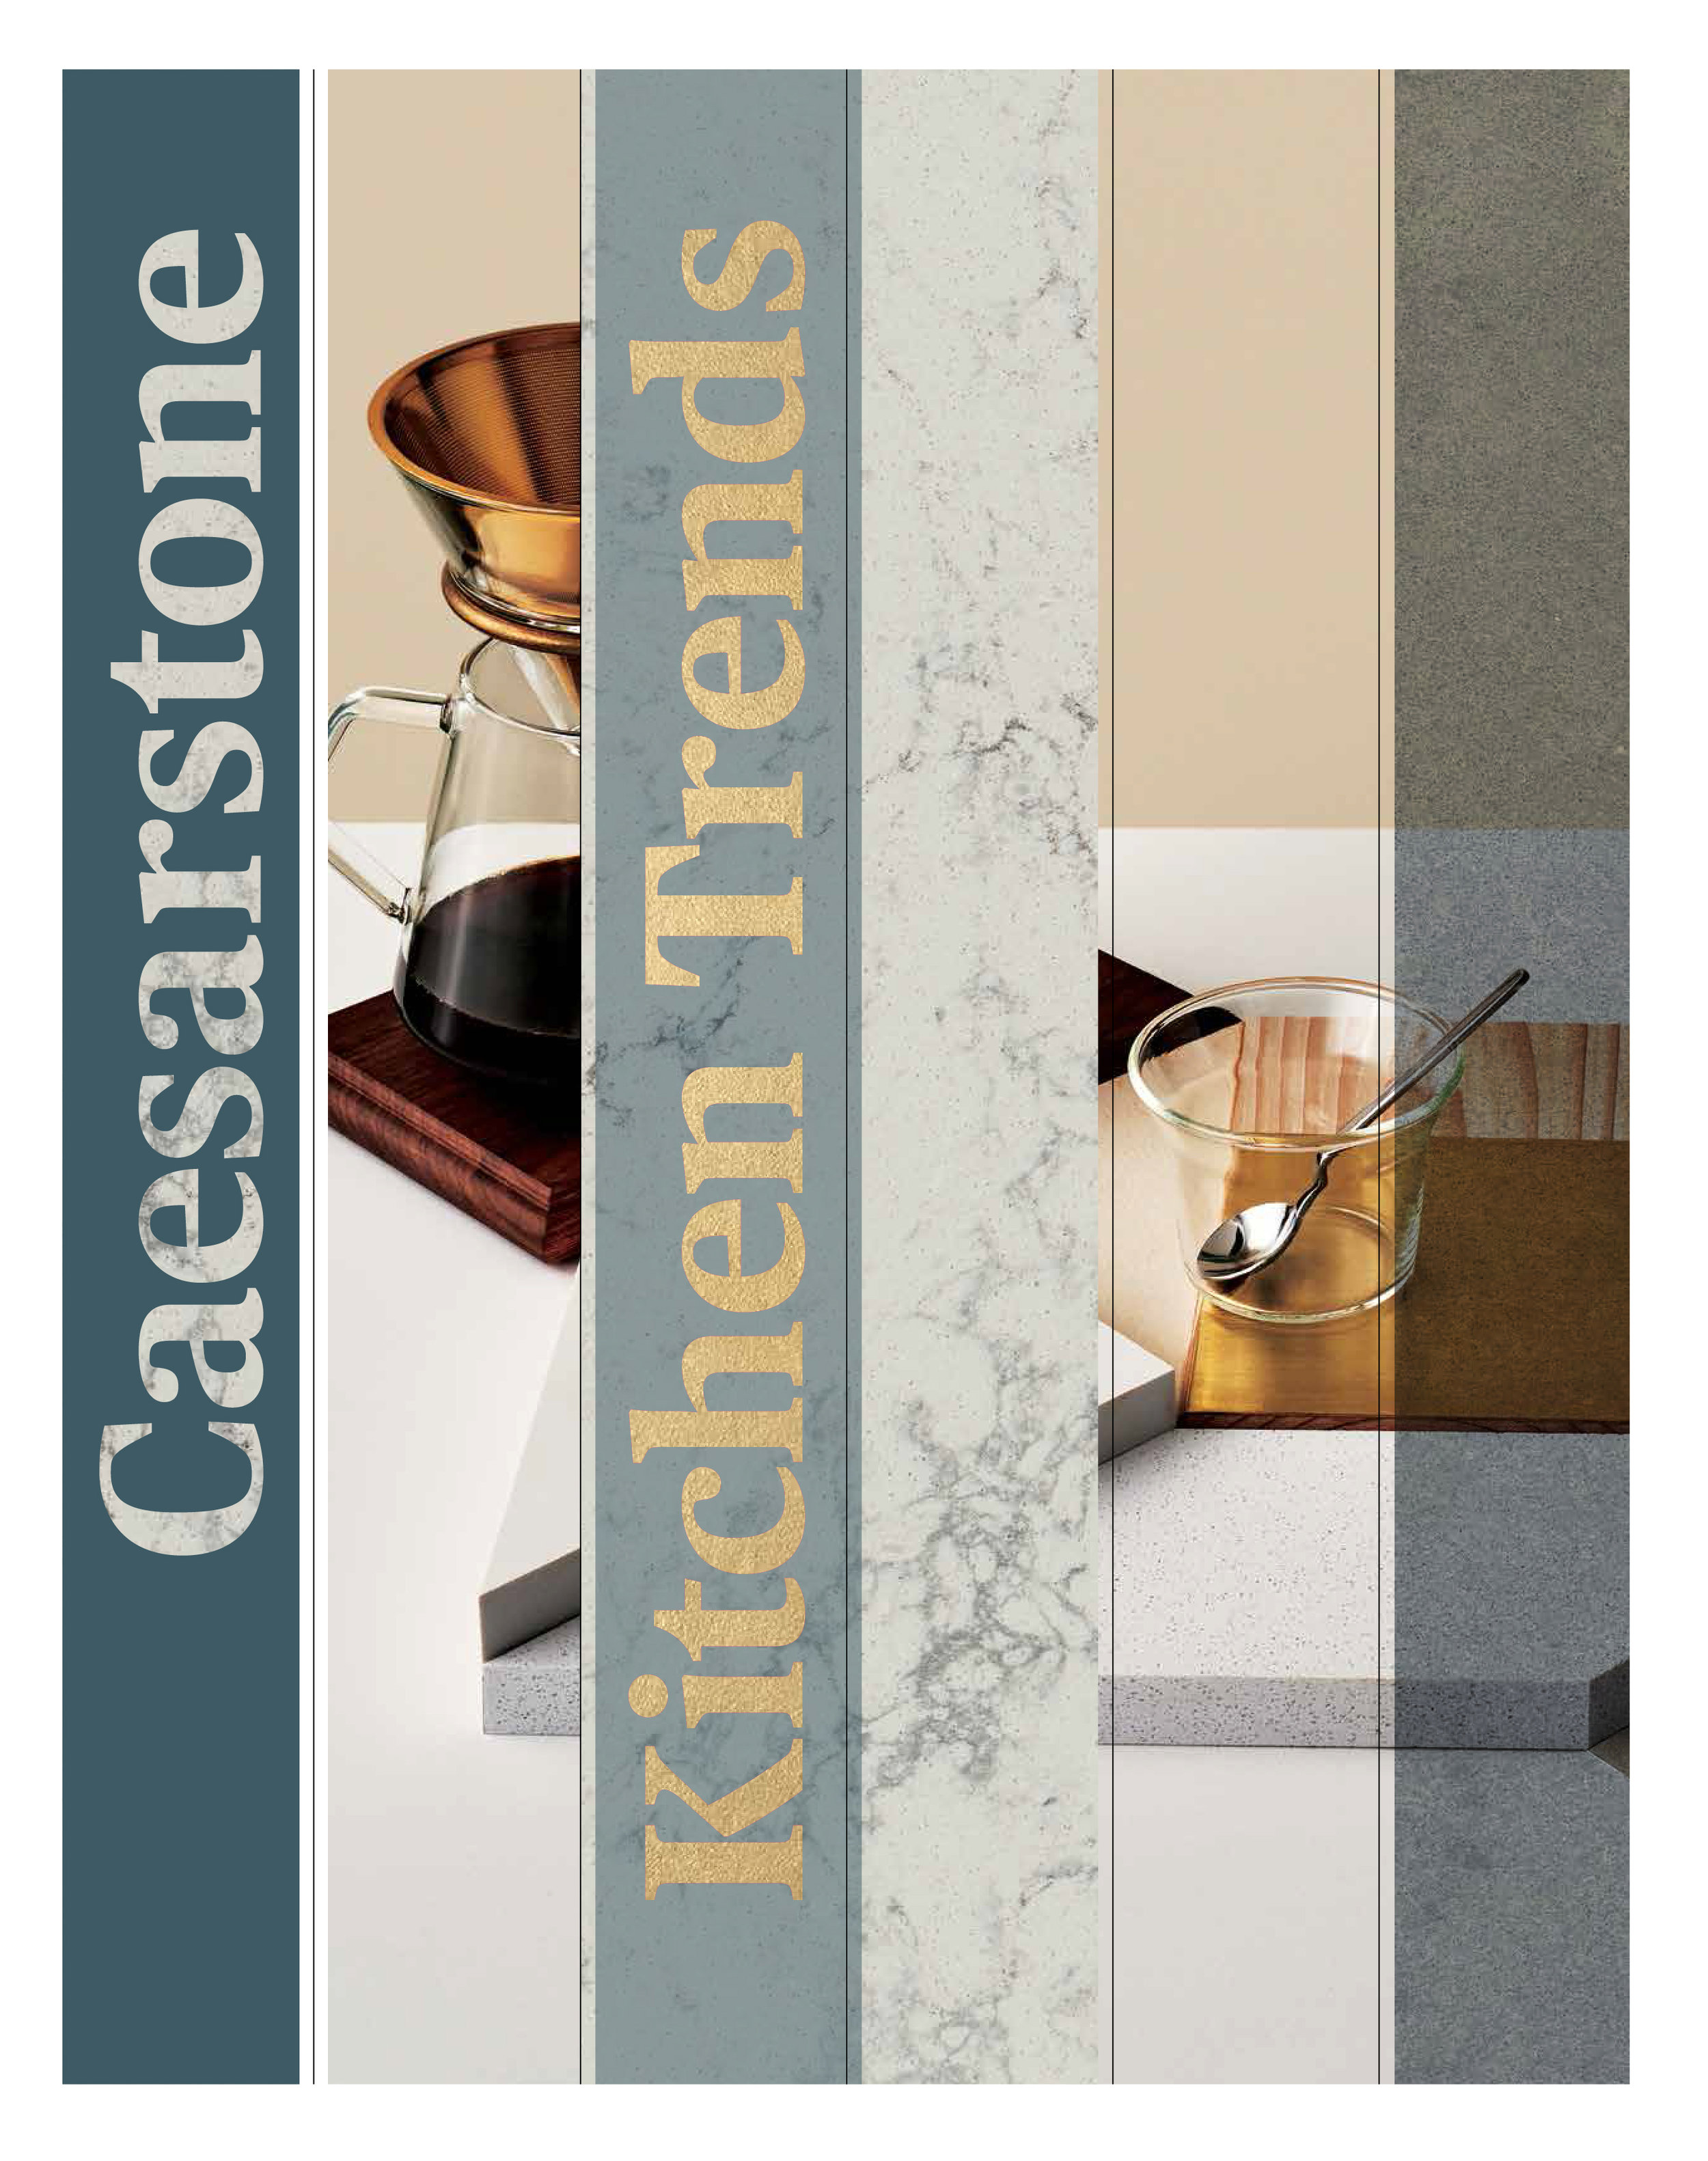 Pages from caesarstone-kitchen-trends-book.jpg